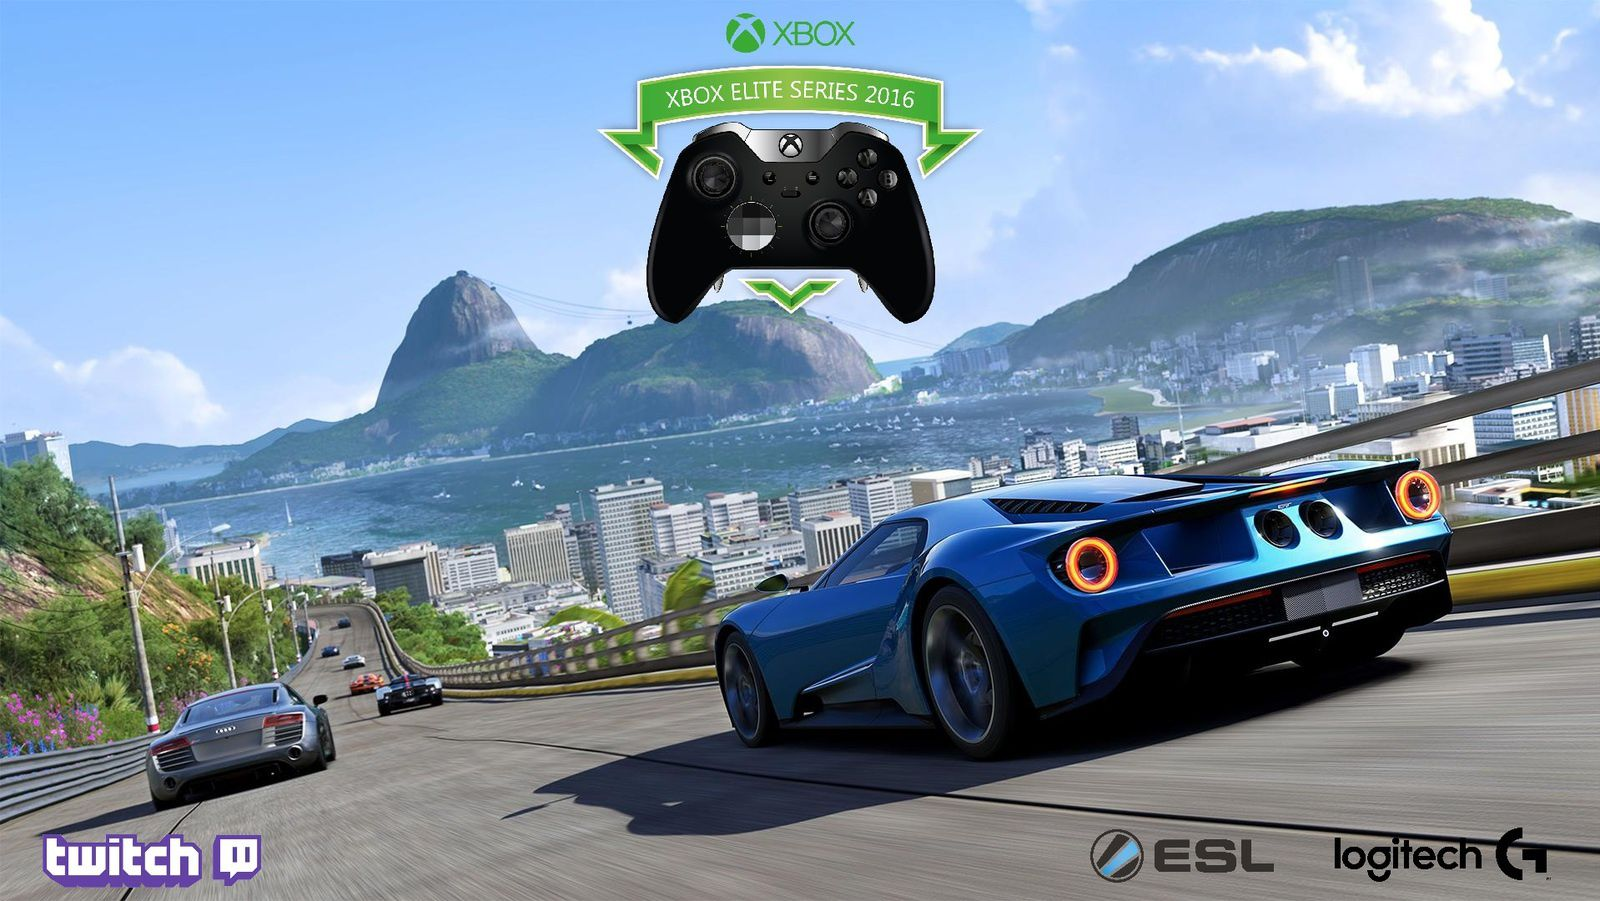 Elite Series 2016 - Forza Motorsport 6, en live!